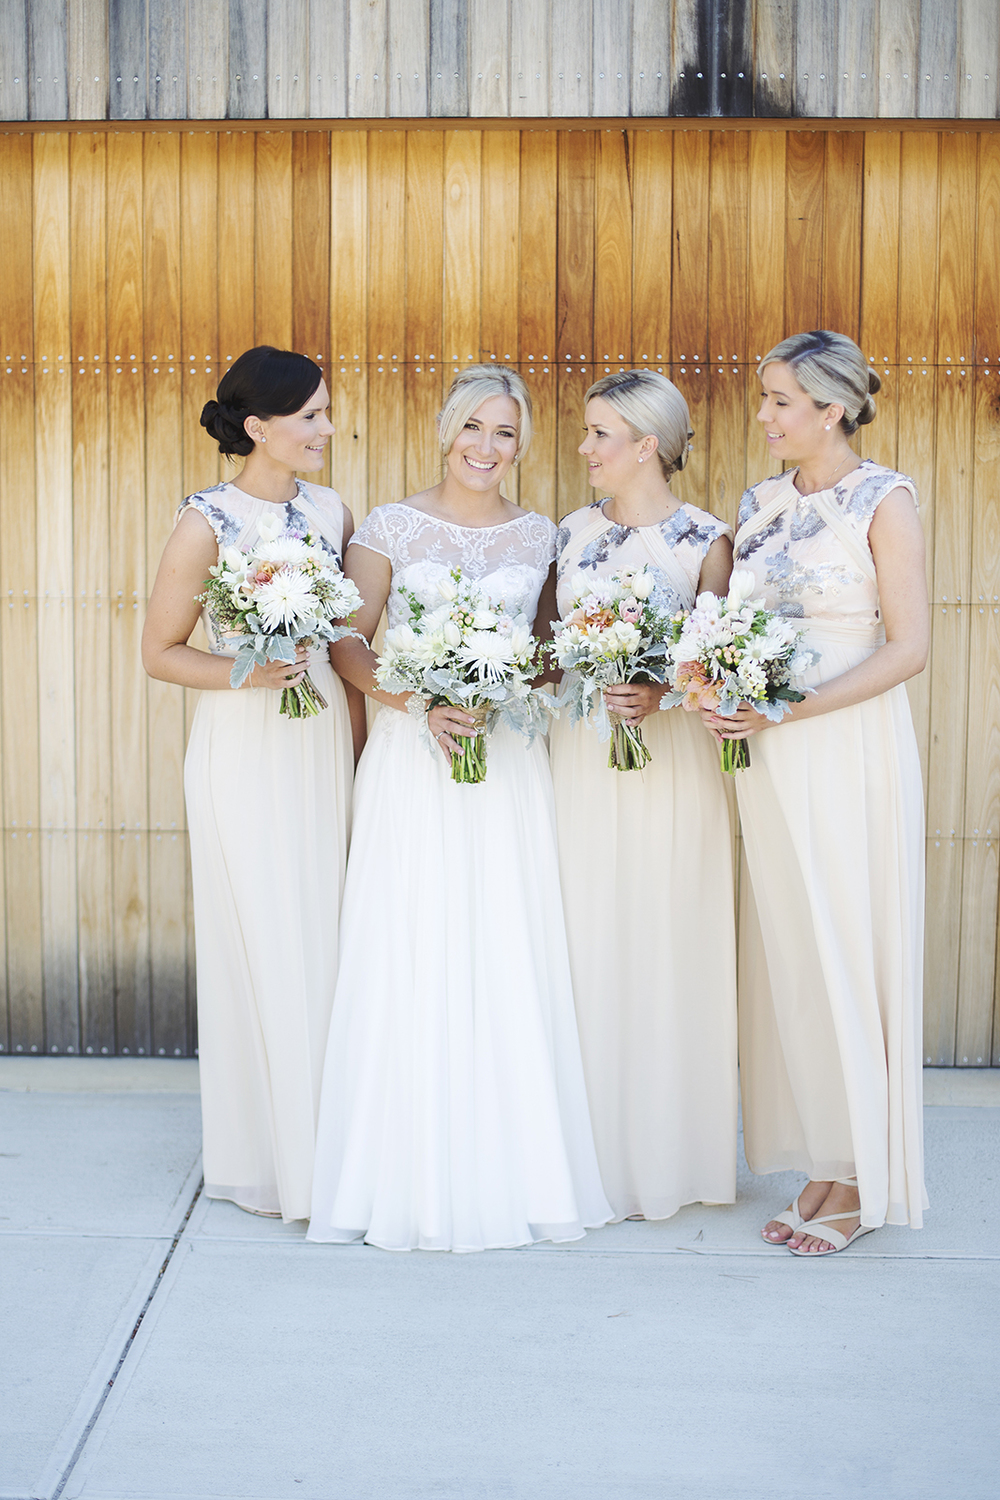 Adelaide Beach Wedding 33 Beautiful Rustic Bridal Party.jpg